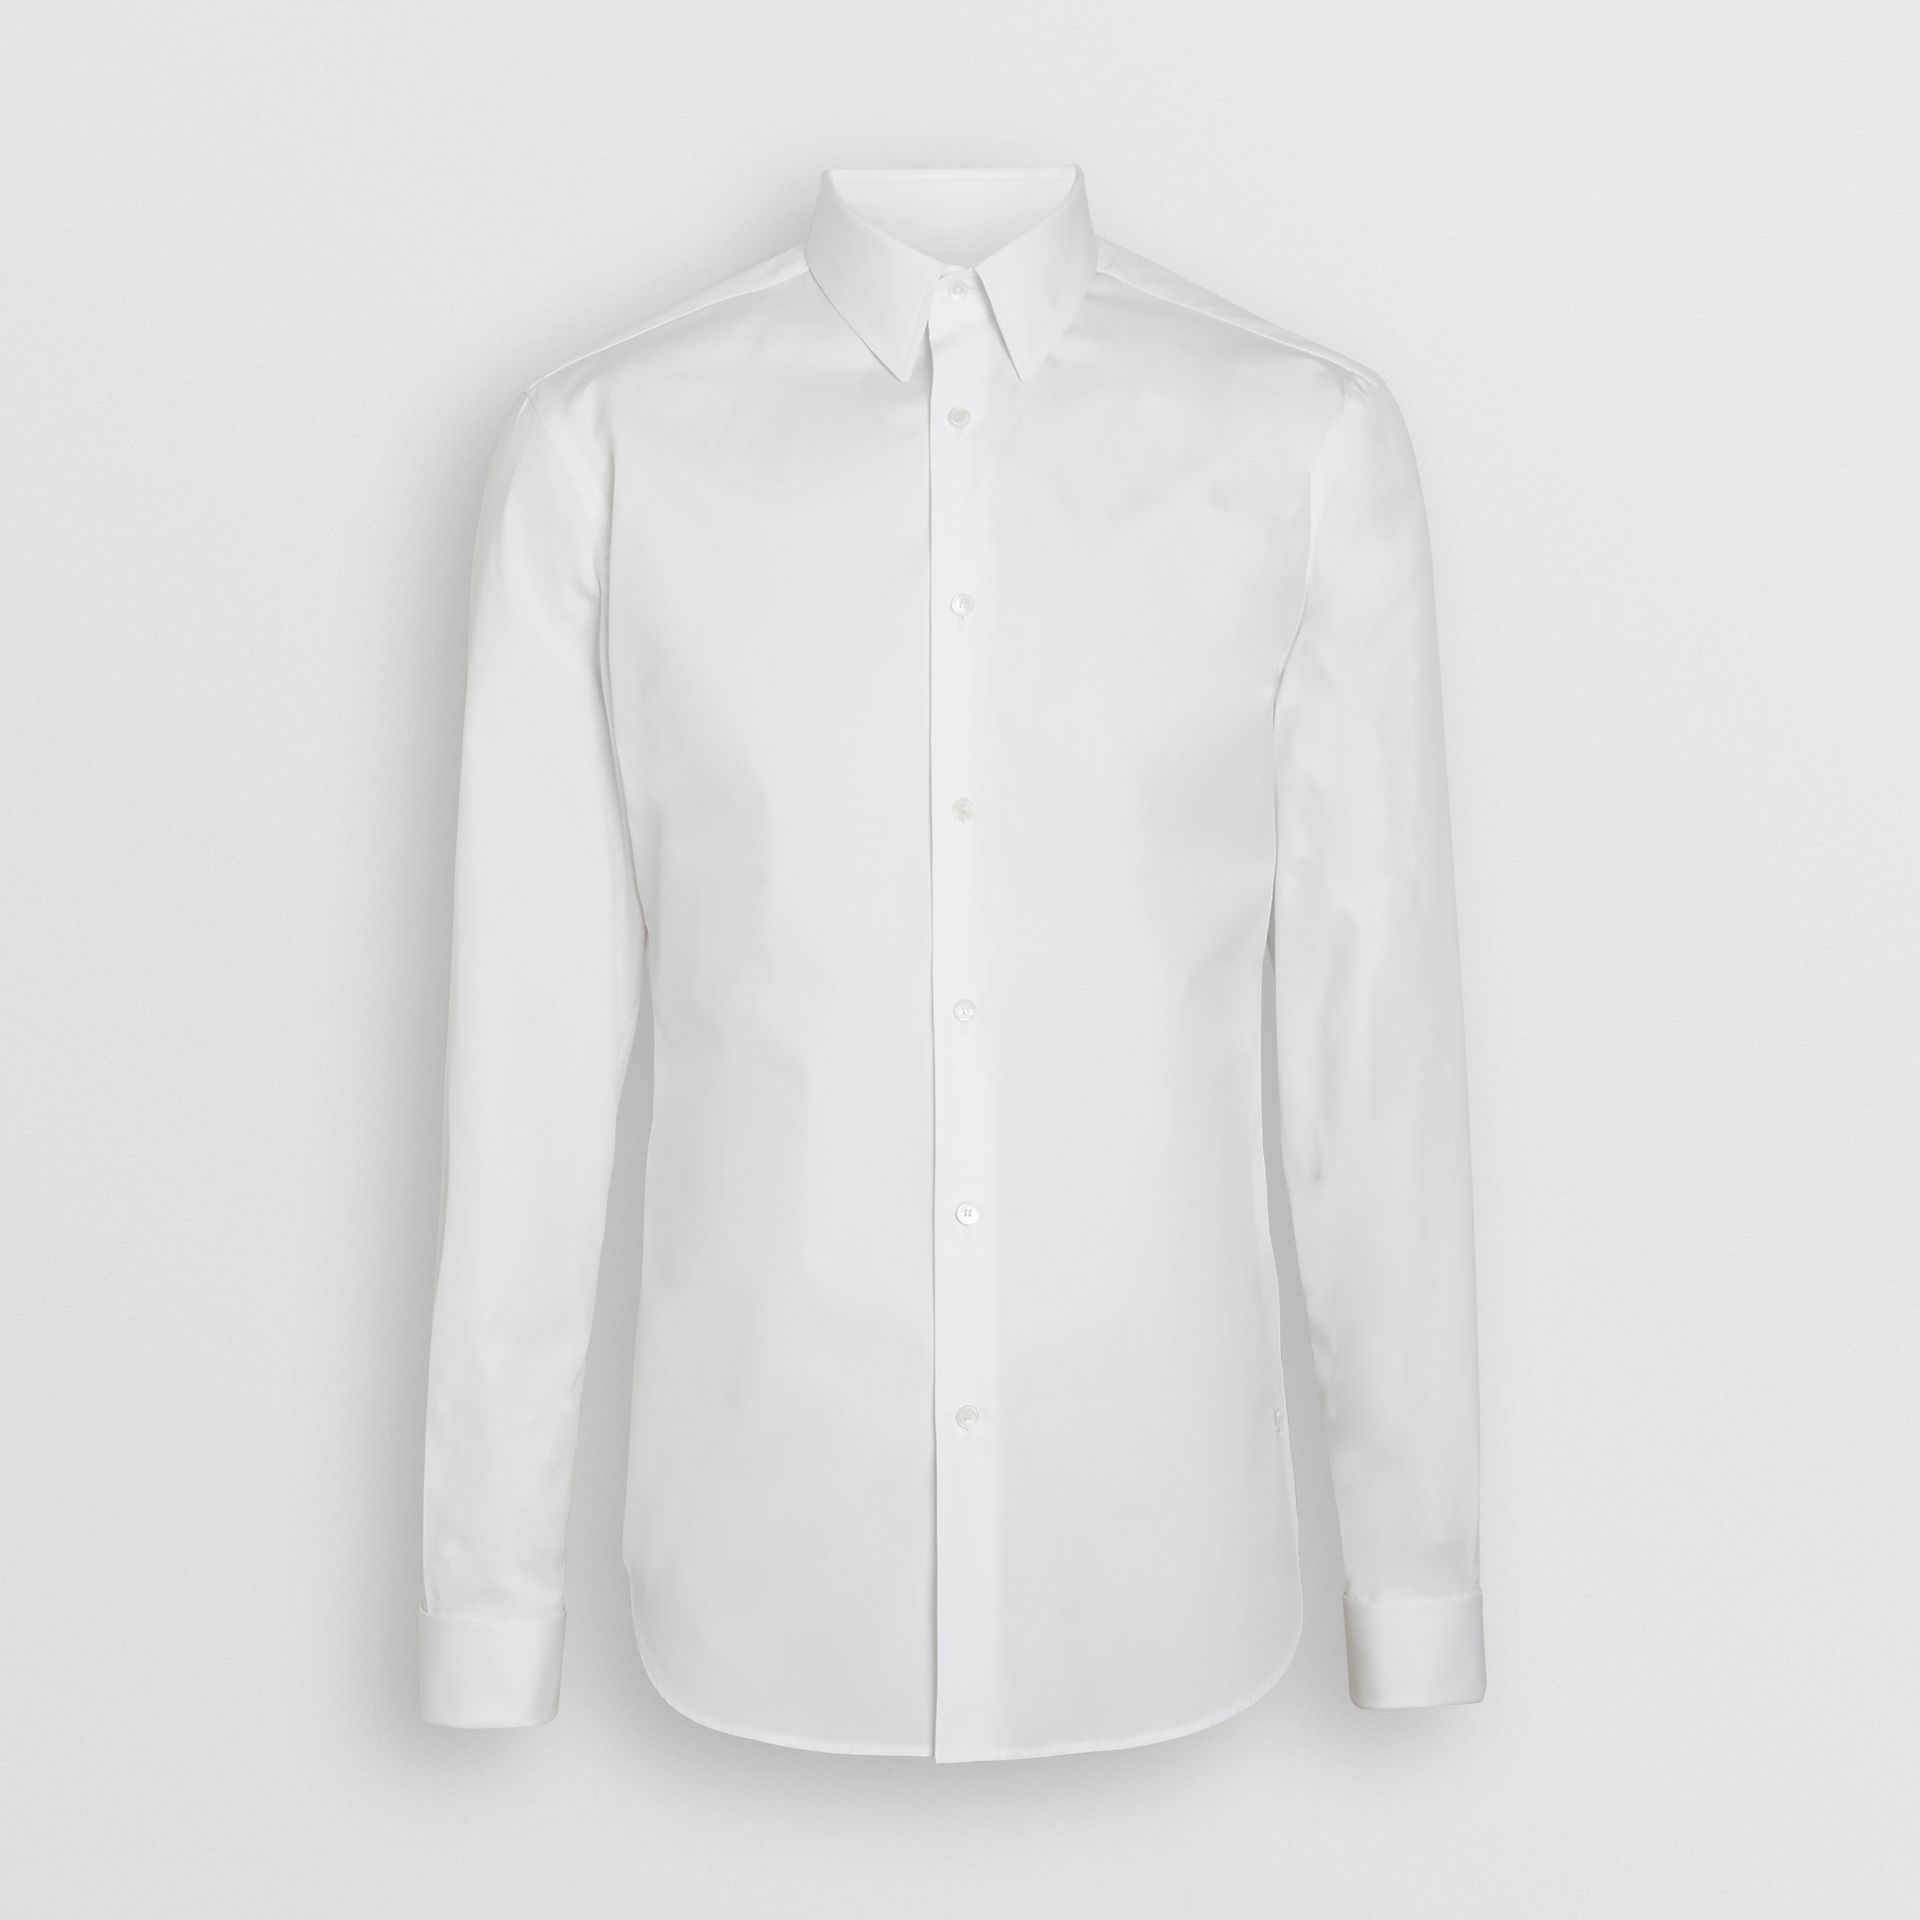 Slim Fit Double Cuff Cotton Poplin Shirt in White - Men | Burberry United Kingdom - gallery image 3